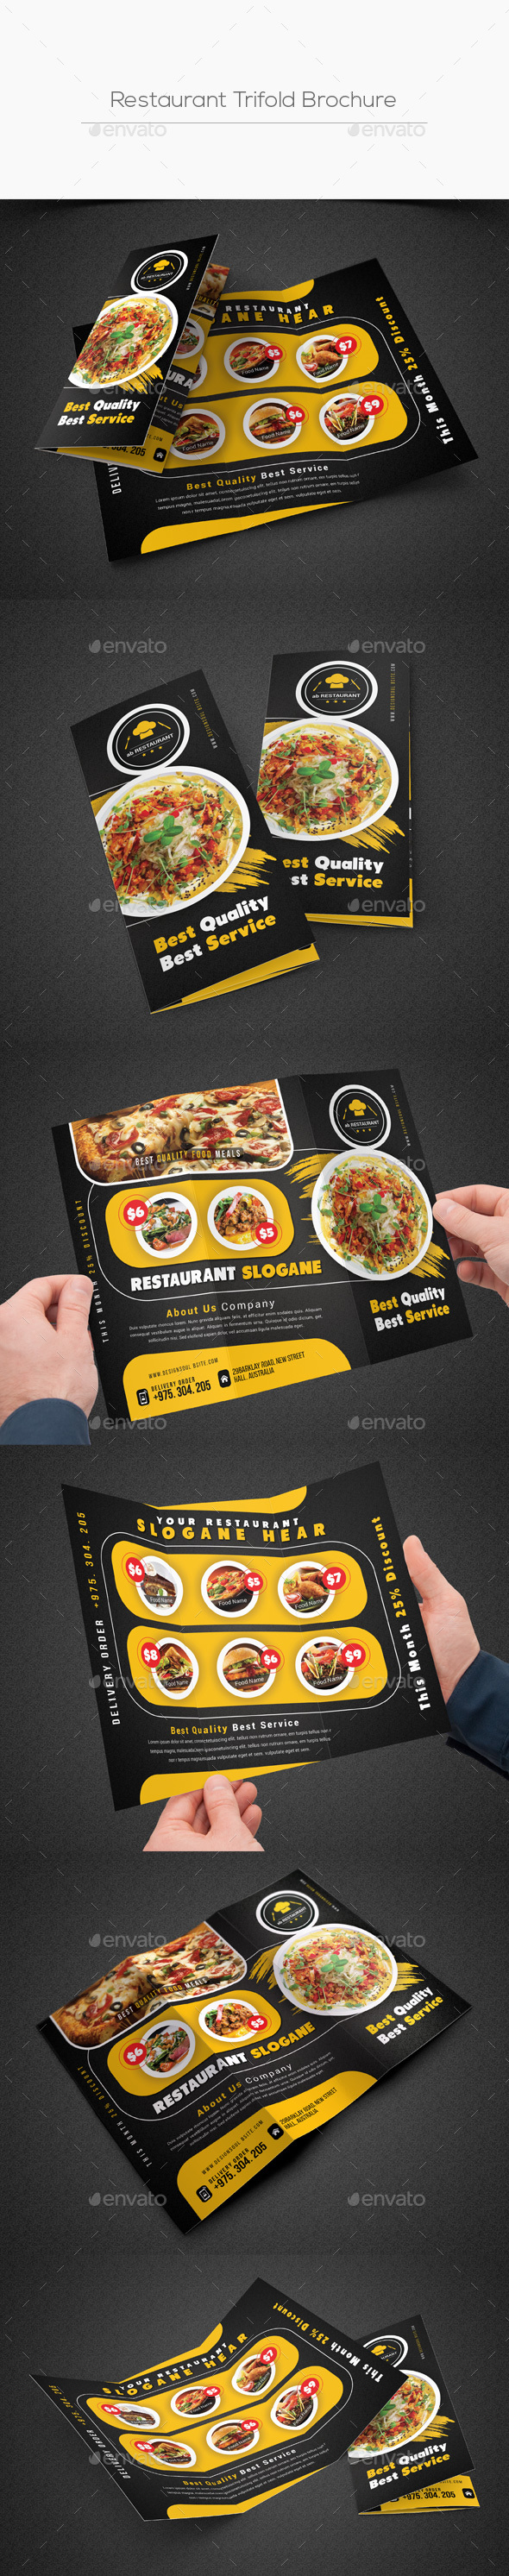 Restaurant Trifold Brochure - Corporate Brochures